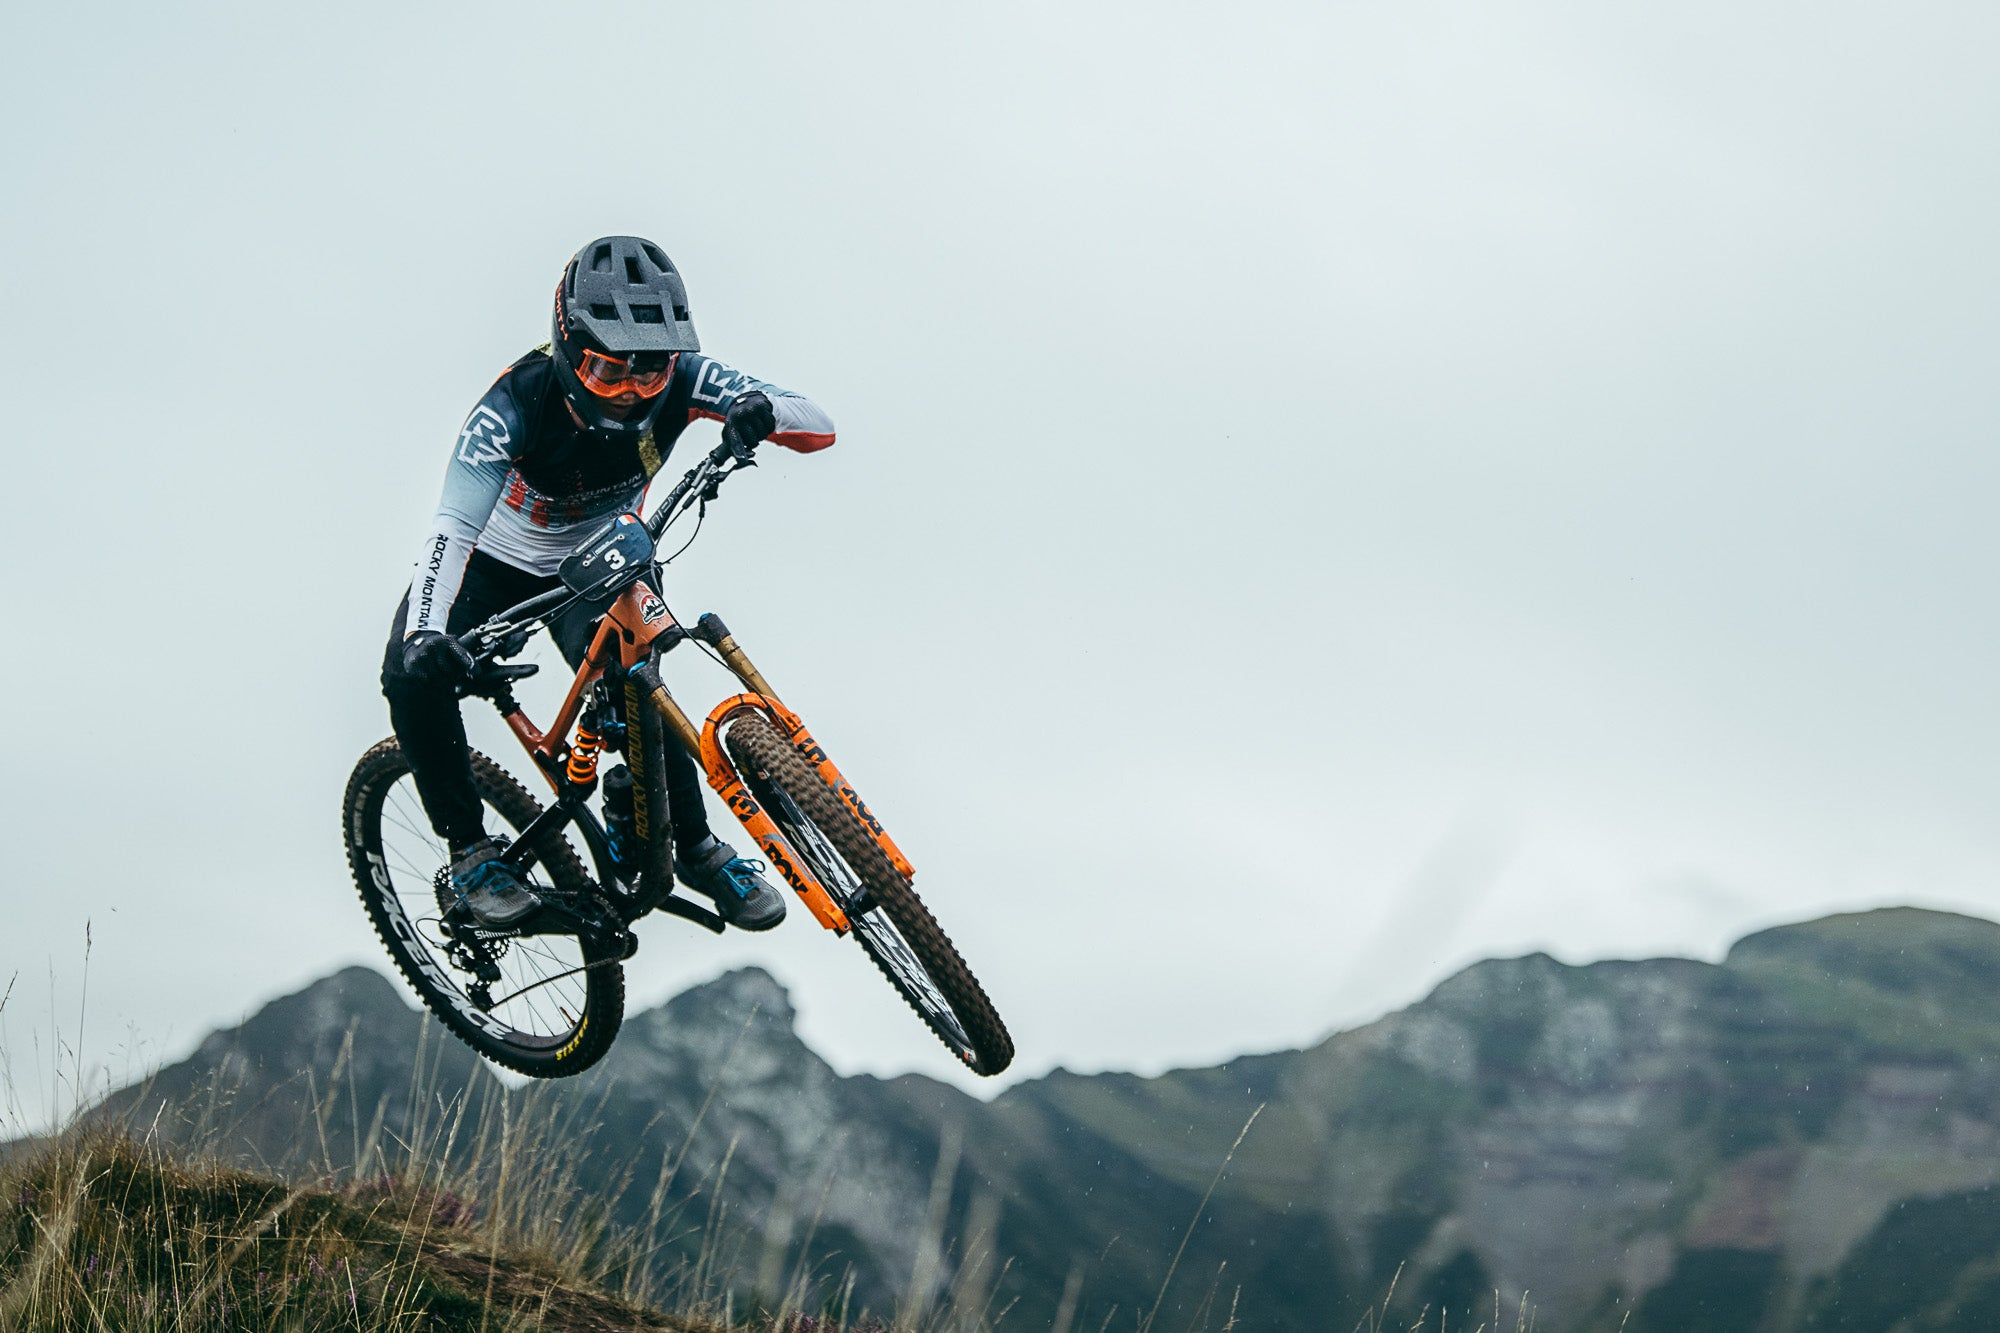 ALN rides her Altitude in the 5th Round of the 2021 EWS season